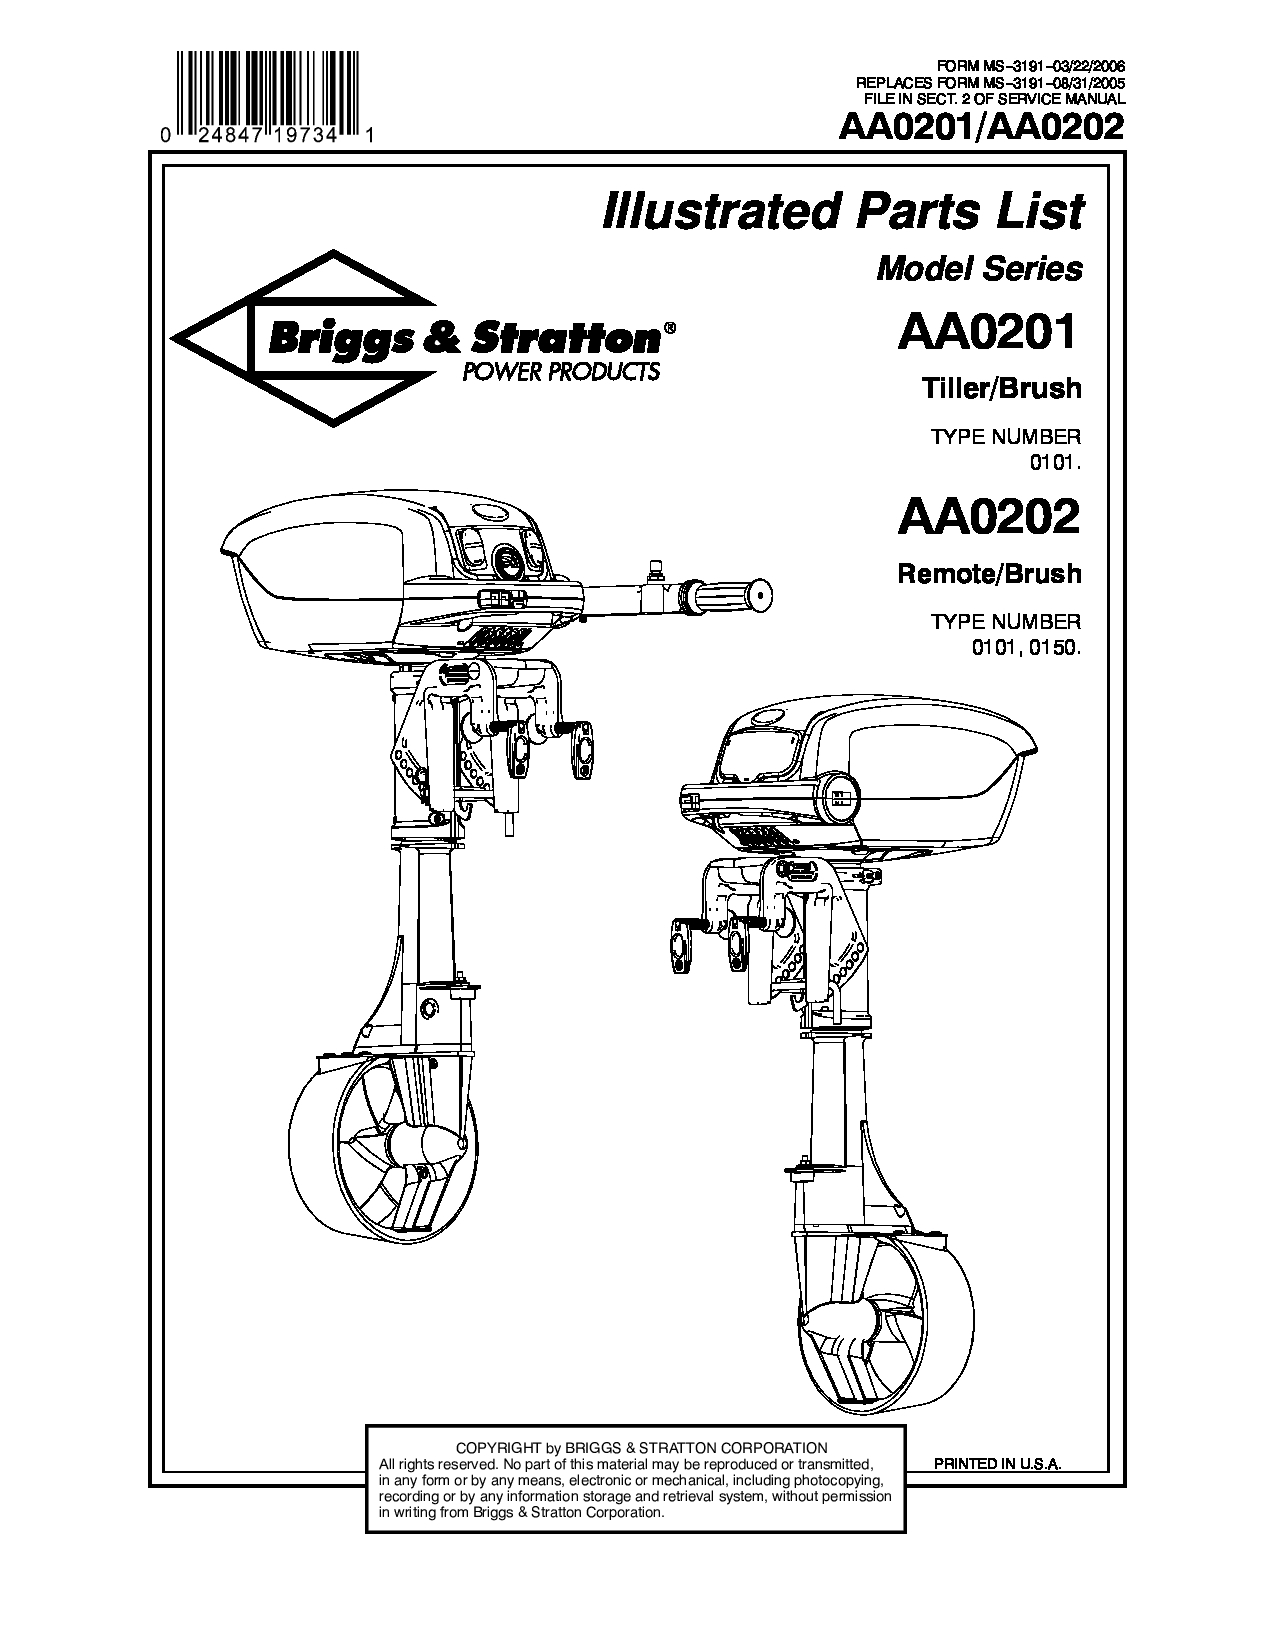 Briggs & Stratton Tiller manuals